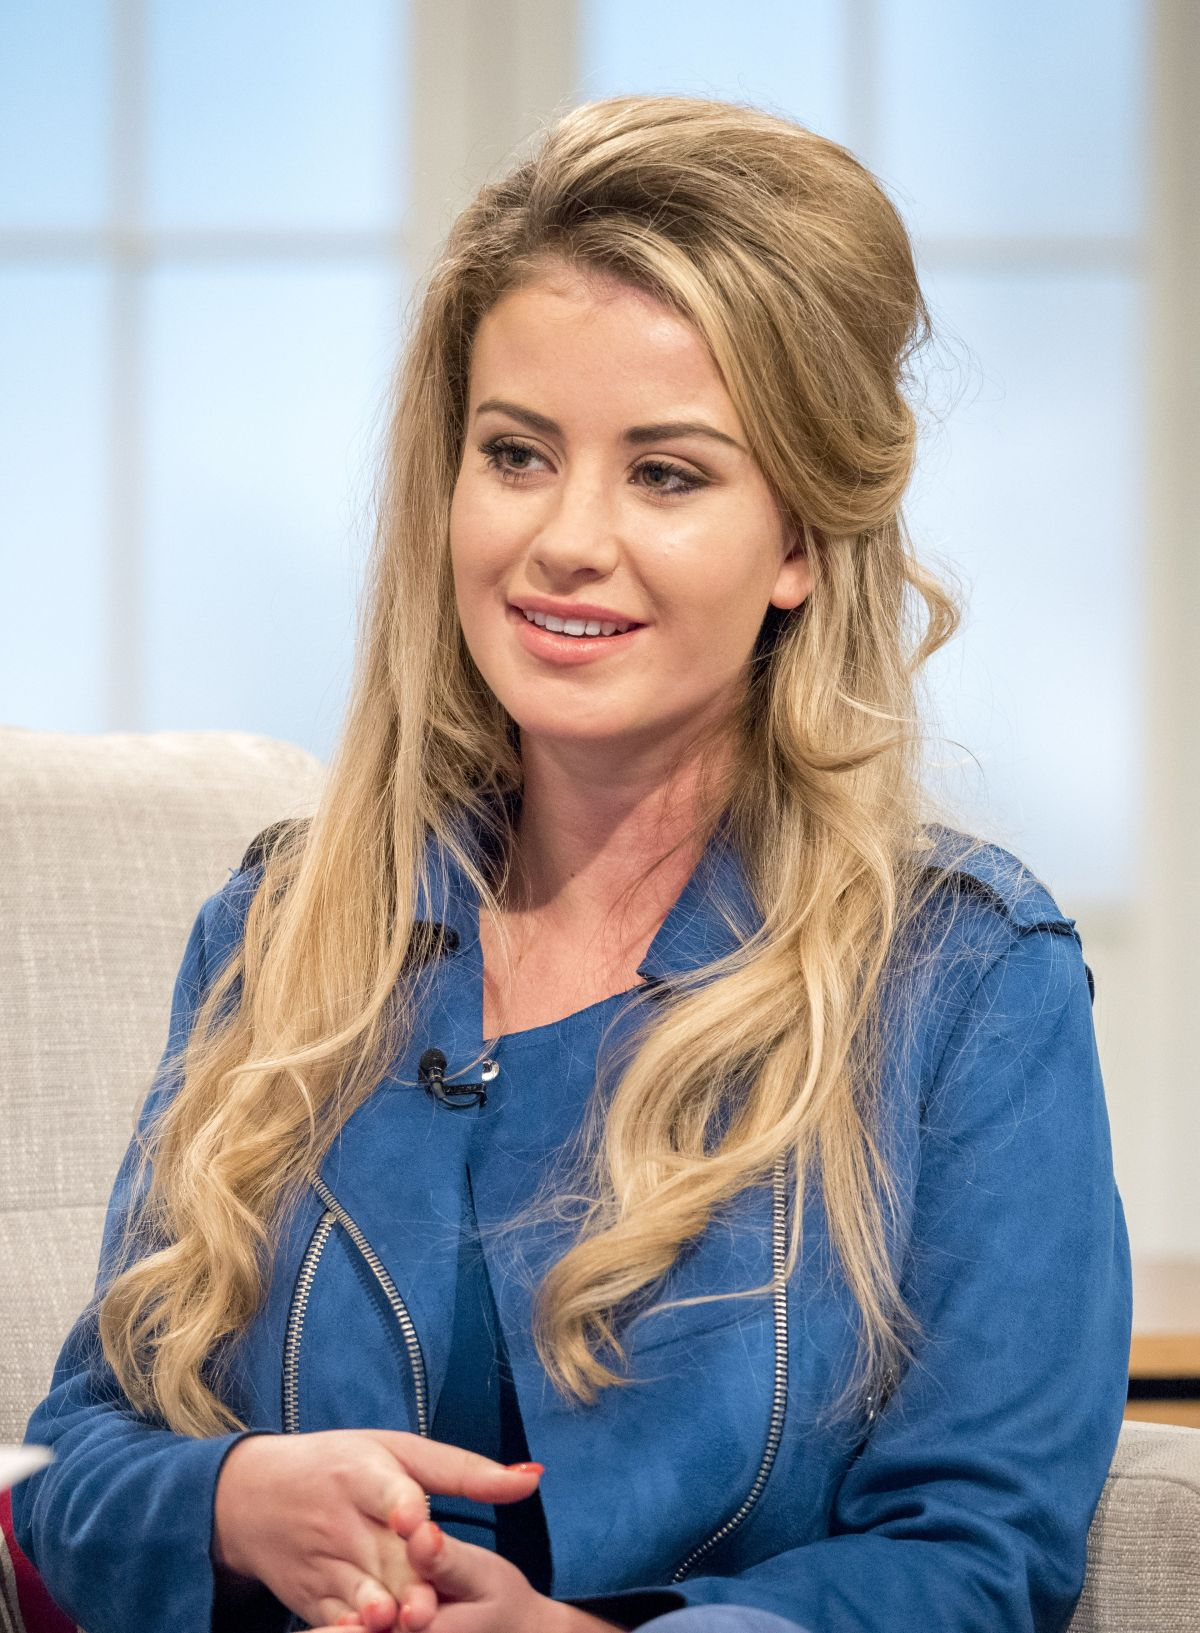 CHLOE AYLING at Lorraine Show in London 08/16/2017